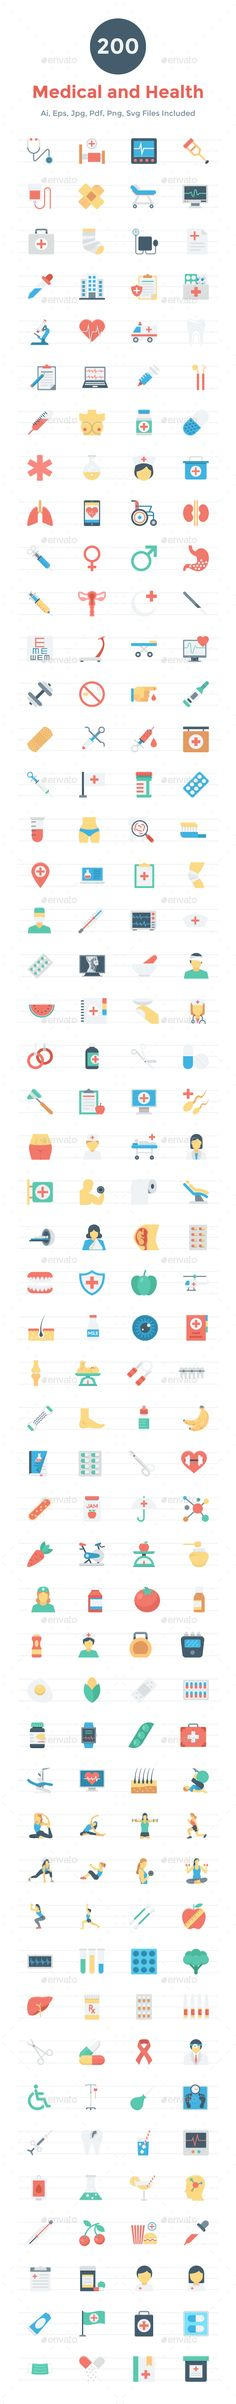 200 Flat Medical and Health Icons Vector EPS, AI Illustrator